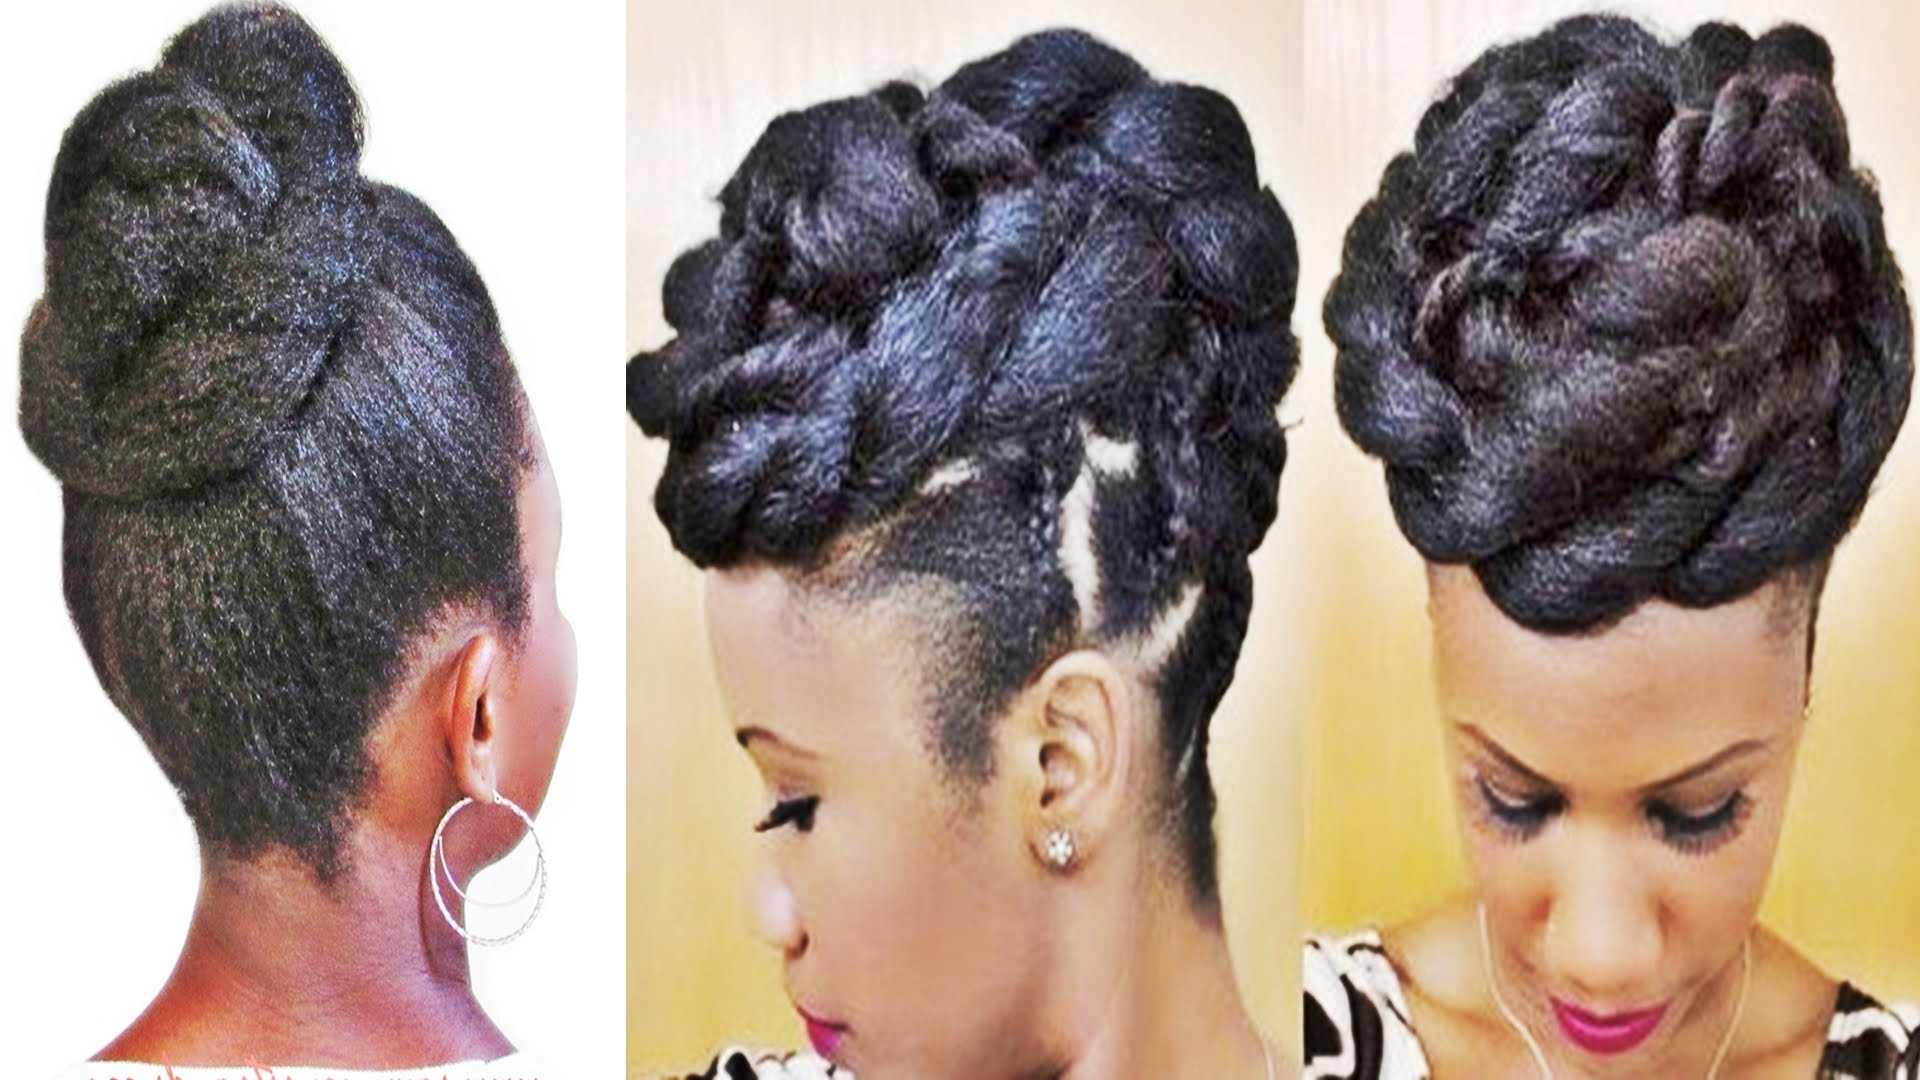 Braids And Twists Updo Hairstyle For Black Women – Youtube In Black Hair Updo Hairstyles (View 4 of 15)